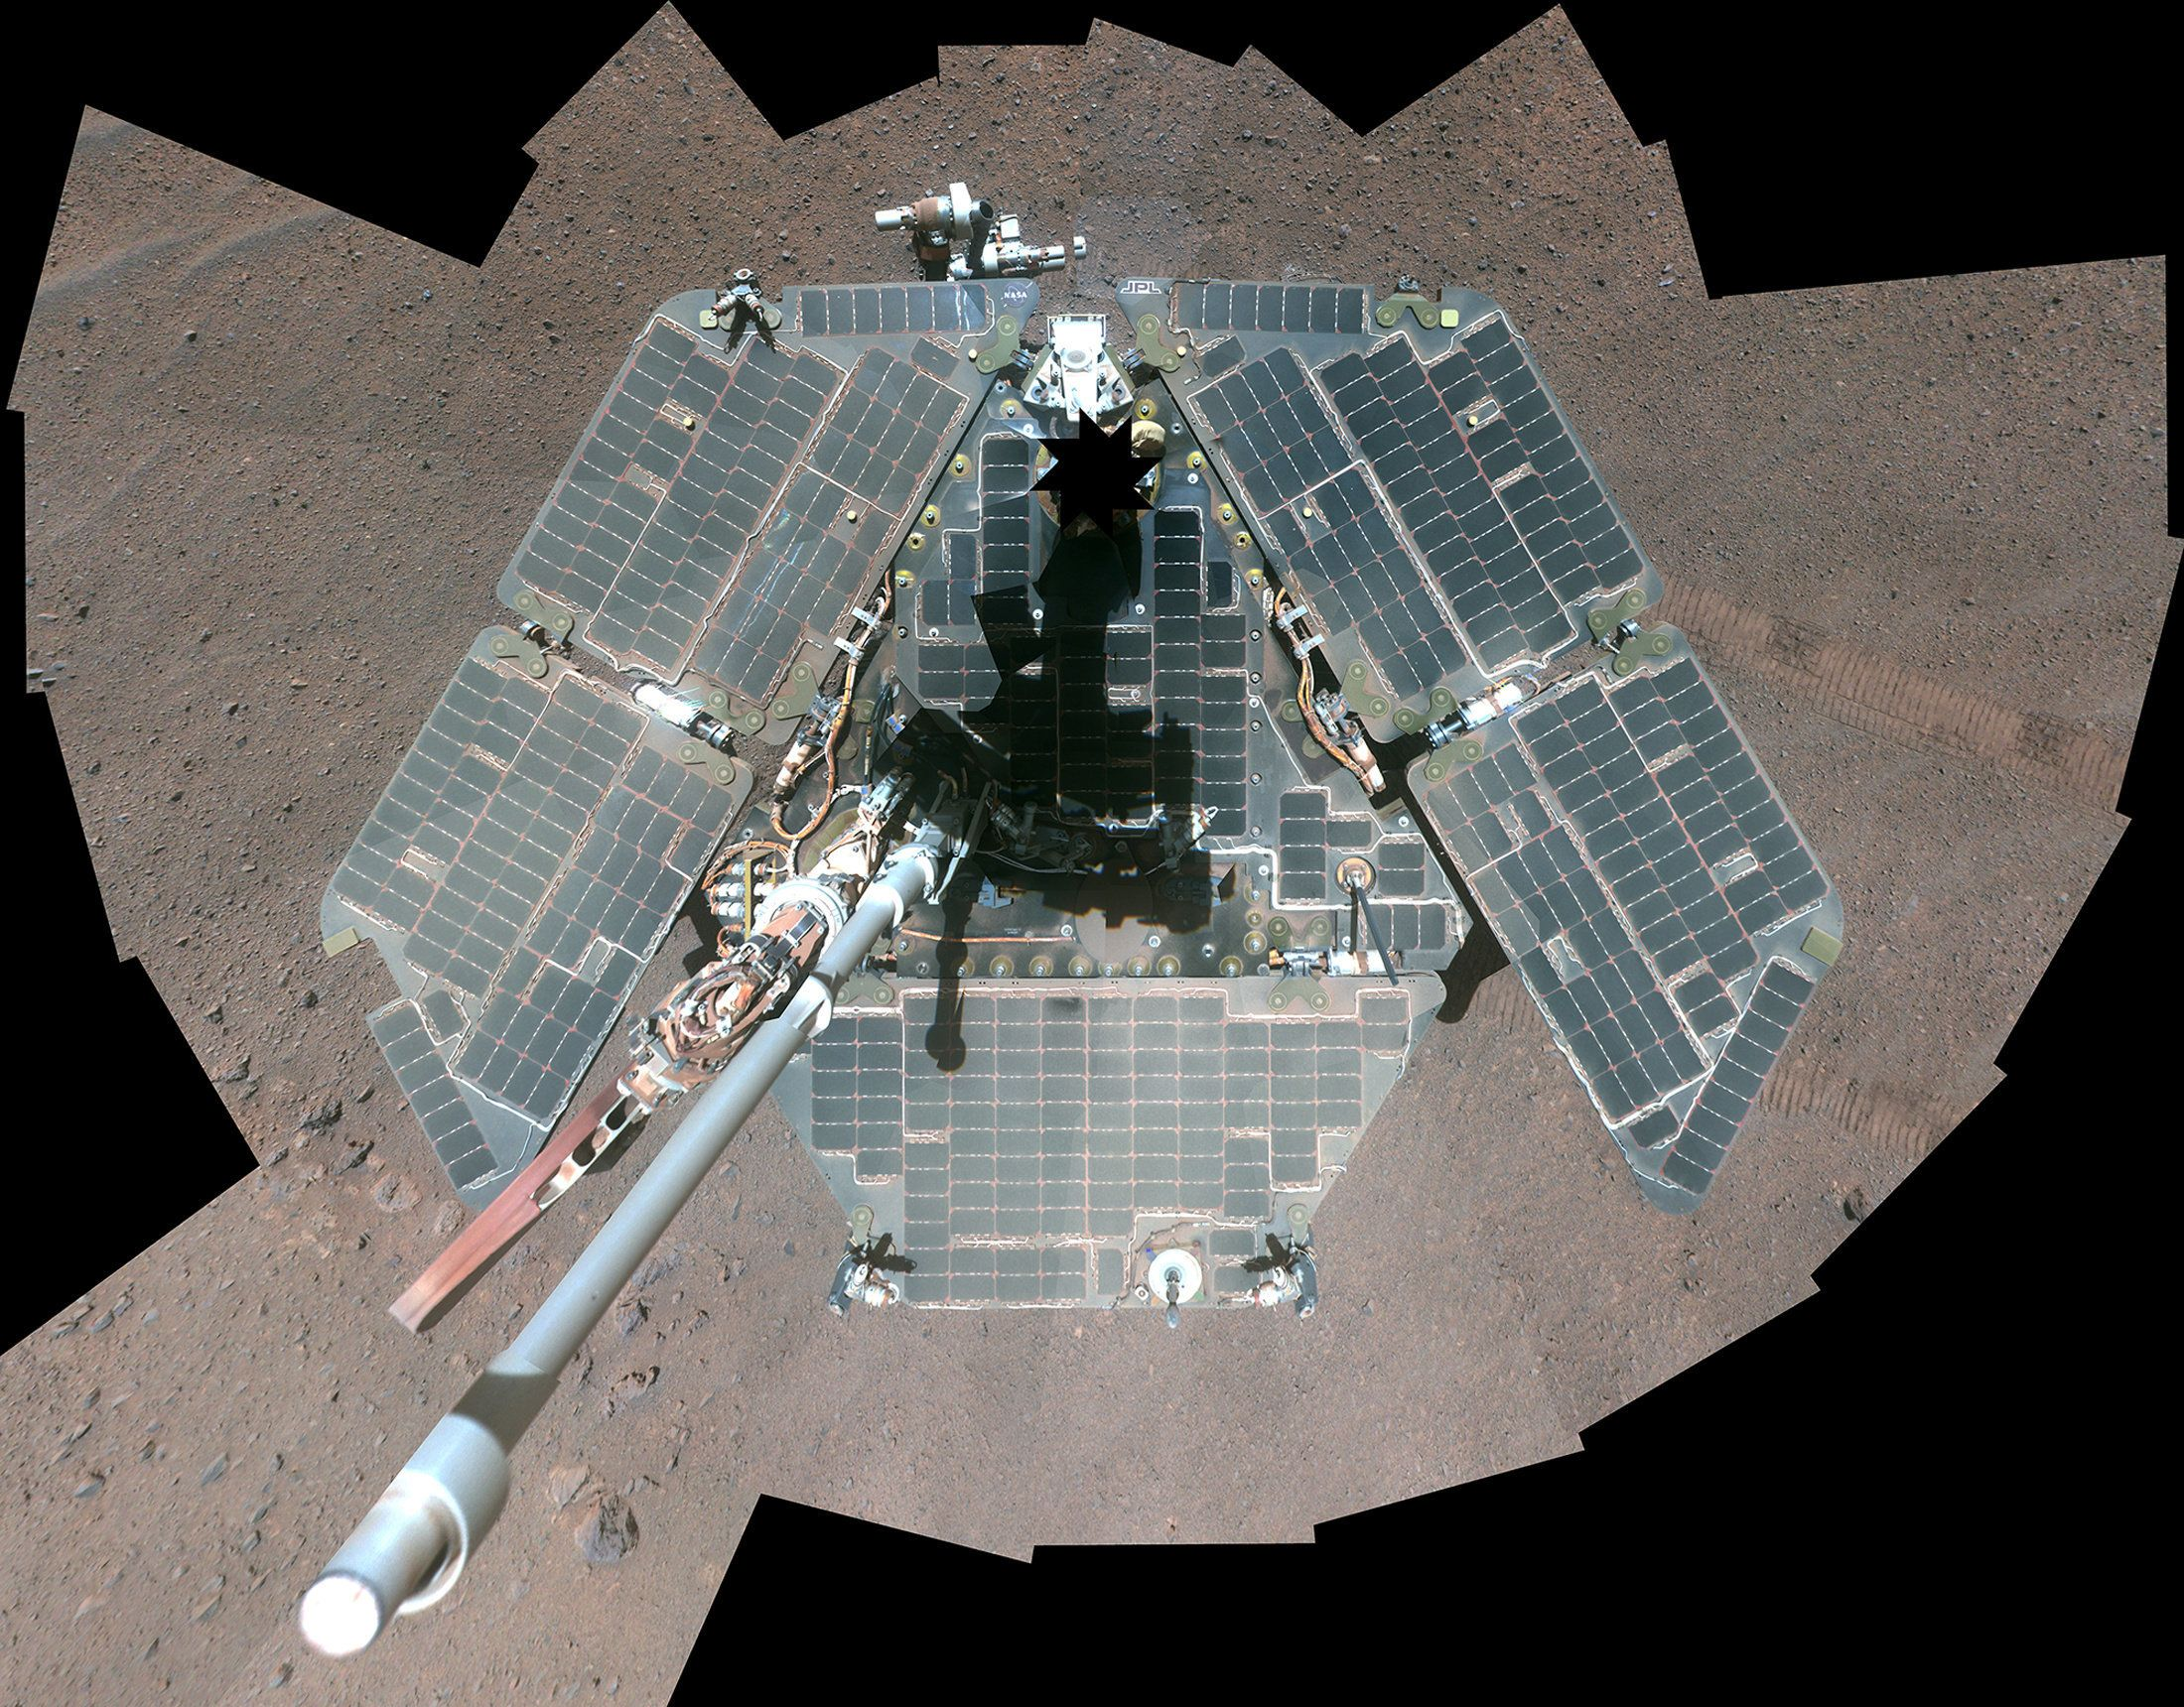 A self-portrait of NASA's Mars Exploration Rover Opportunity, using a combination of multiple frames taken by Opportunity's p